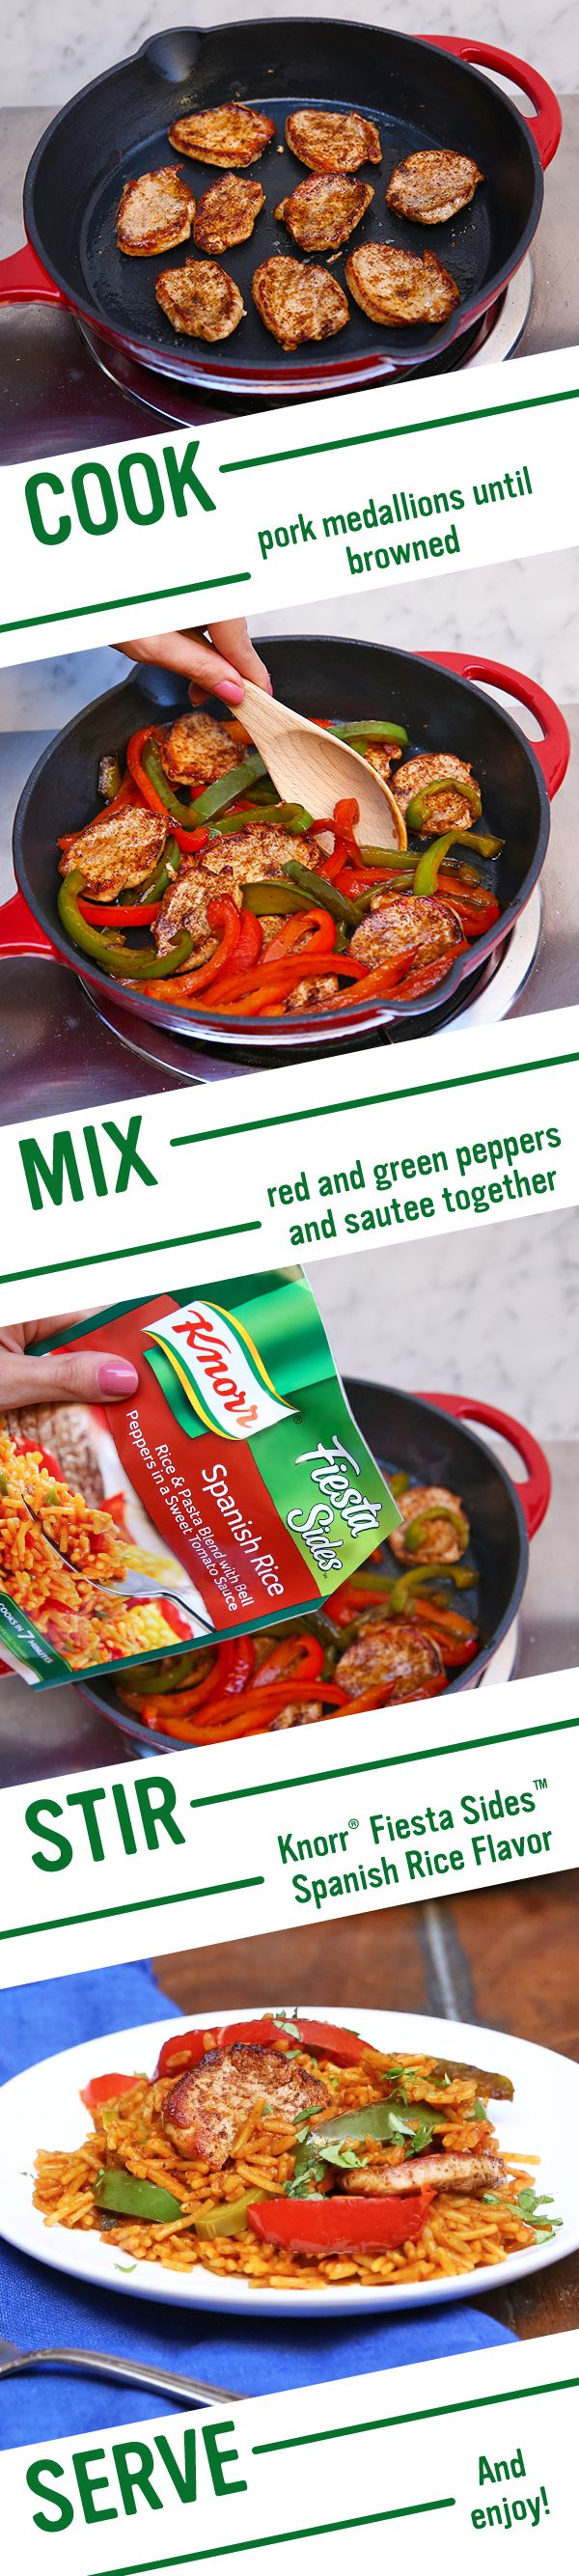 Treat your friends and family to Knorr's Spanish Pork & Rice. Follow this easy recipe: 1. Season pork with cumin, chili powder & salt. Heat olive oil in a skillet and cook meat. Set aside. 2. Cook red peppers in same pan. Stir in water Knorr® Fiesta Sides™ - Spanish Rice & pork. Bring to a boil and simmer. 3. Add jalapeño, sprinkle with cilantro, and serve. Enjoy!